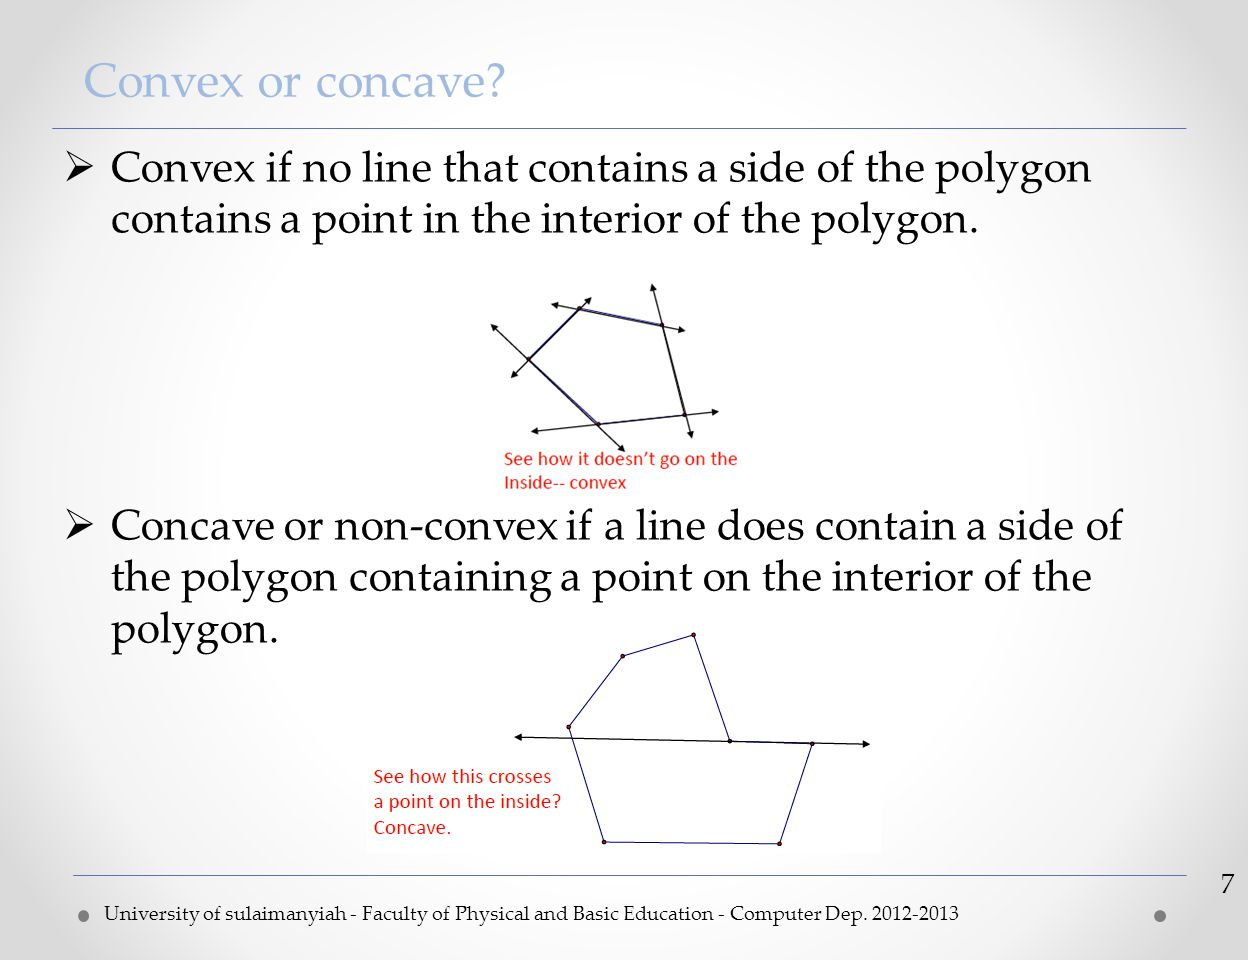 Convex or concave? University of sulaimanyiah - Faculty of Physical and Basic Education - Computer Dep. 2012-2013 7  Convex if no line that contains